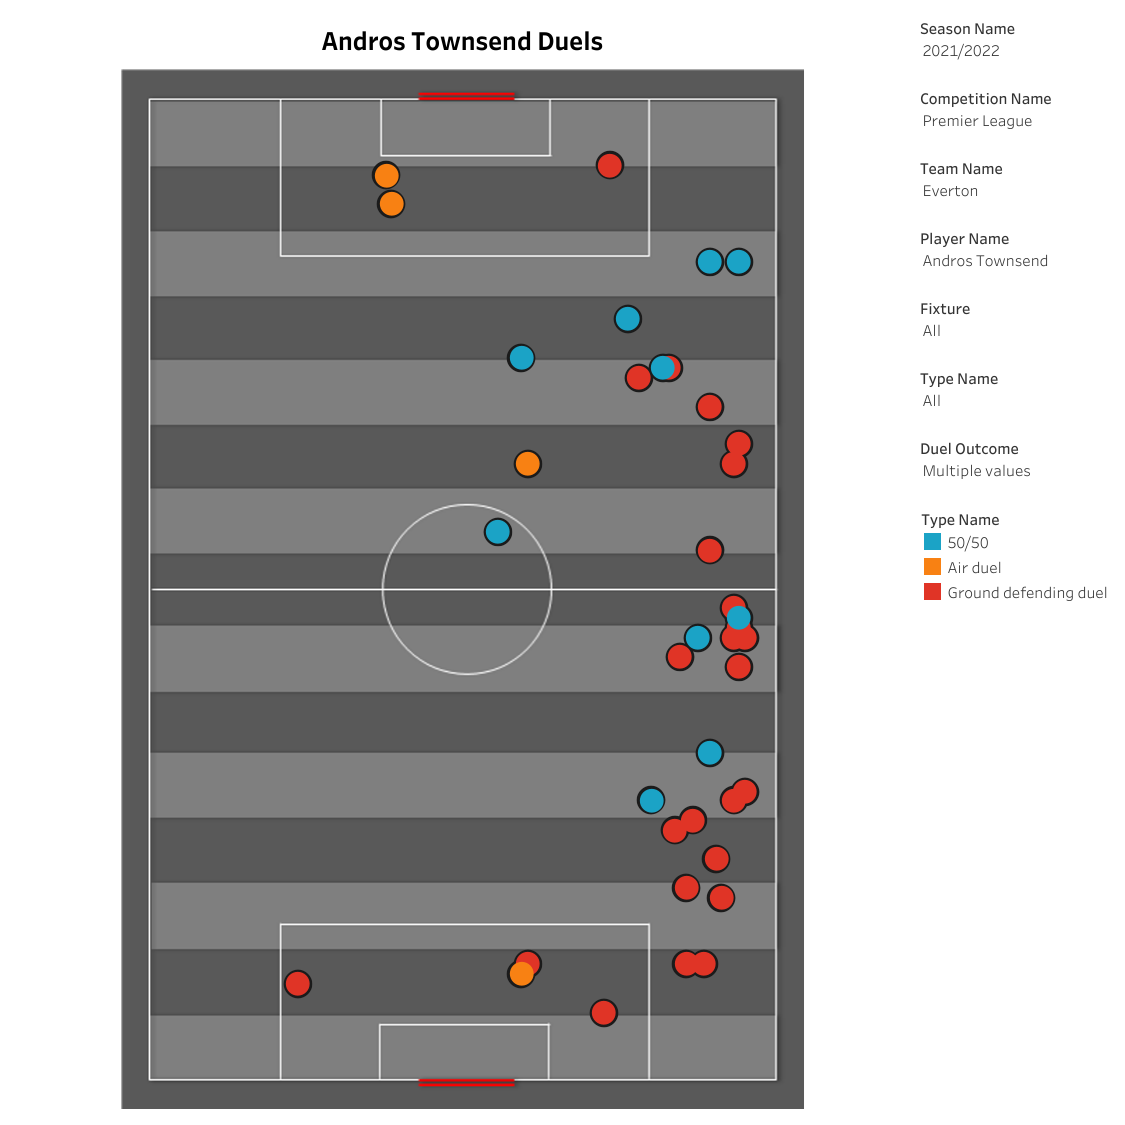 Premier League Stats: Andros Townsend